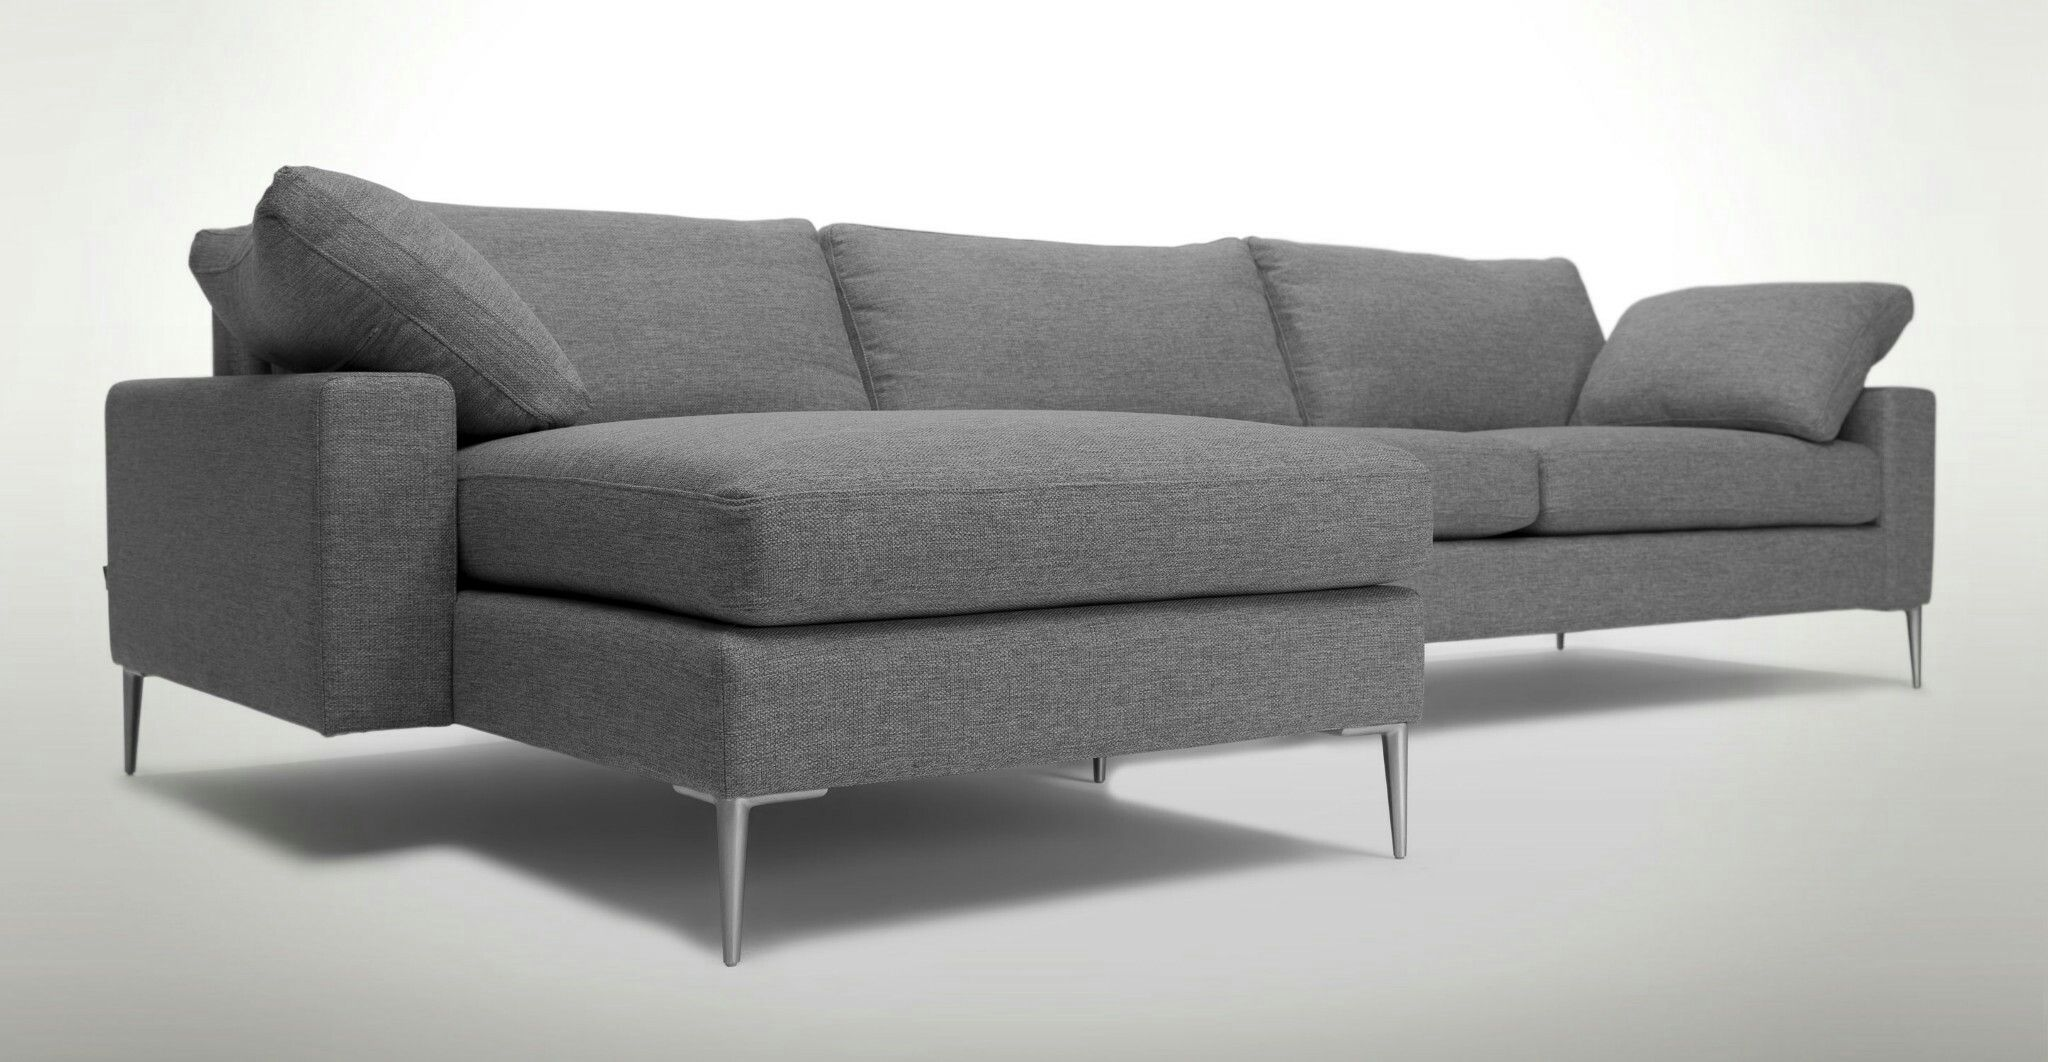 Burrard Seasalt Gray Sofa Sofas Article